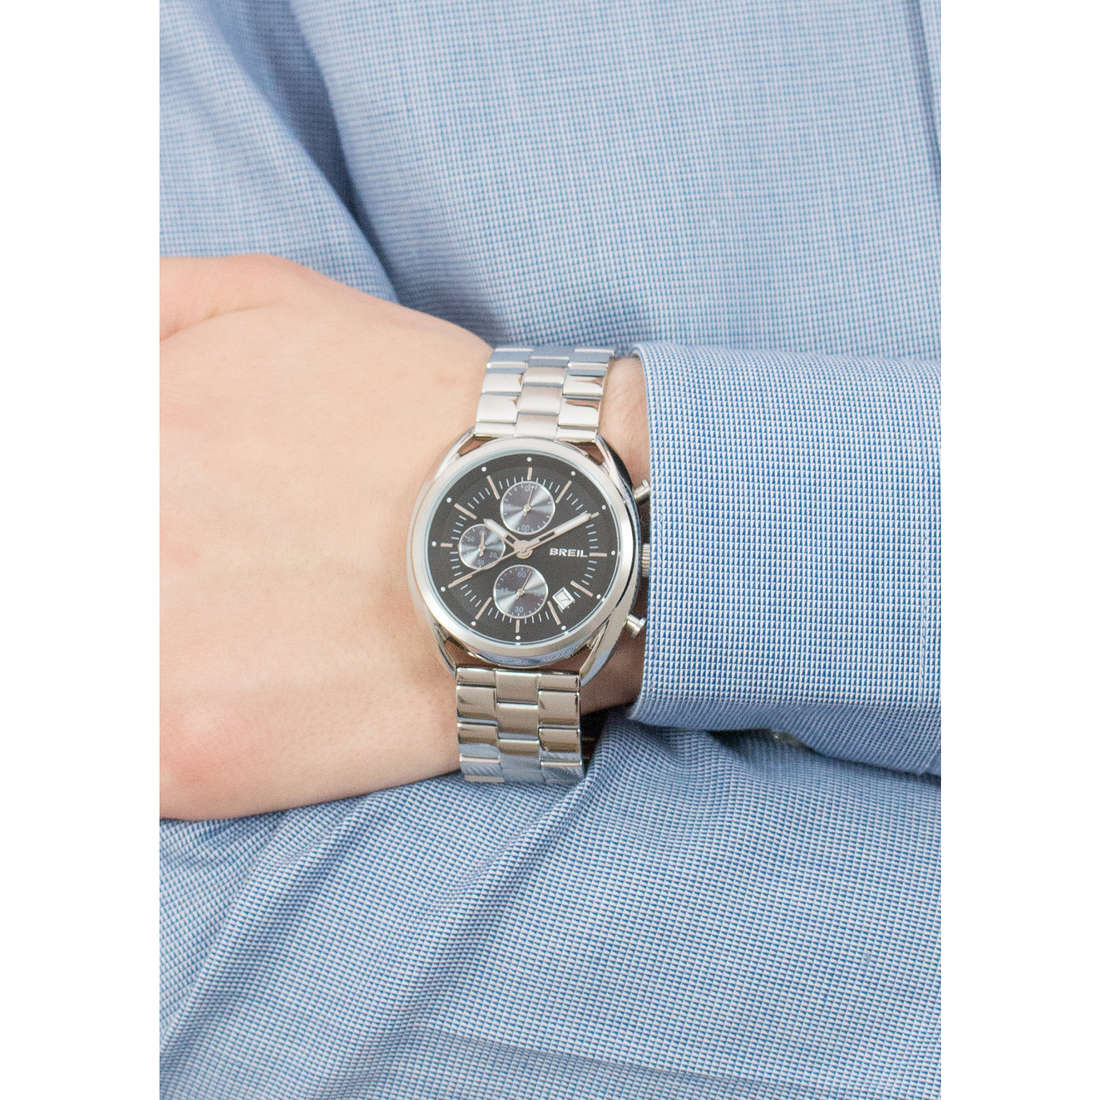 Breil chronographes Beaubourg Extension homme TW1514 photo wearing